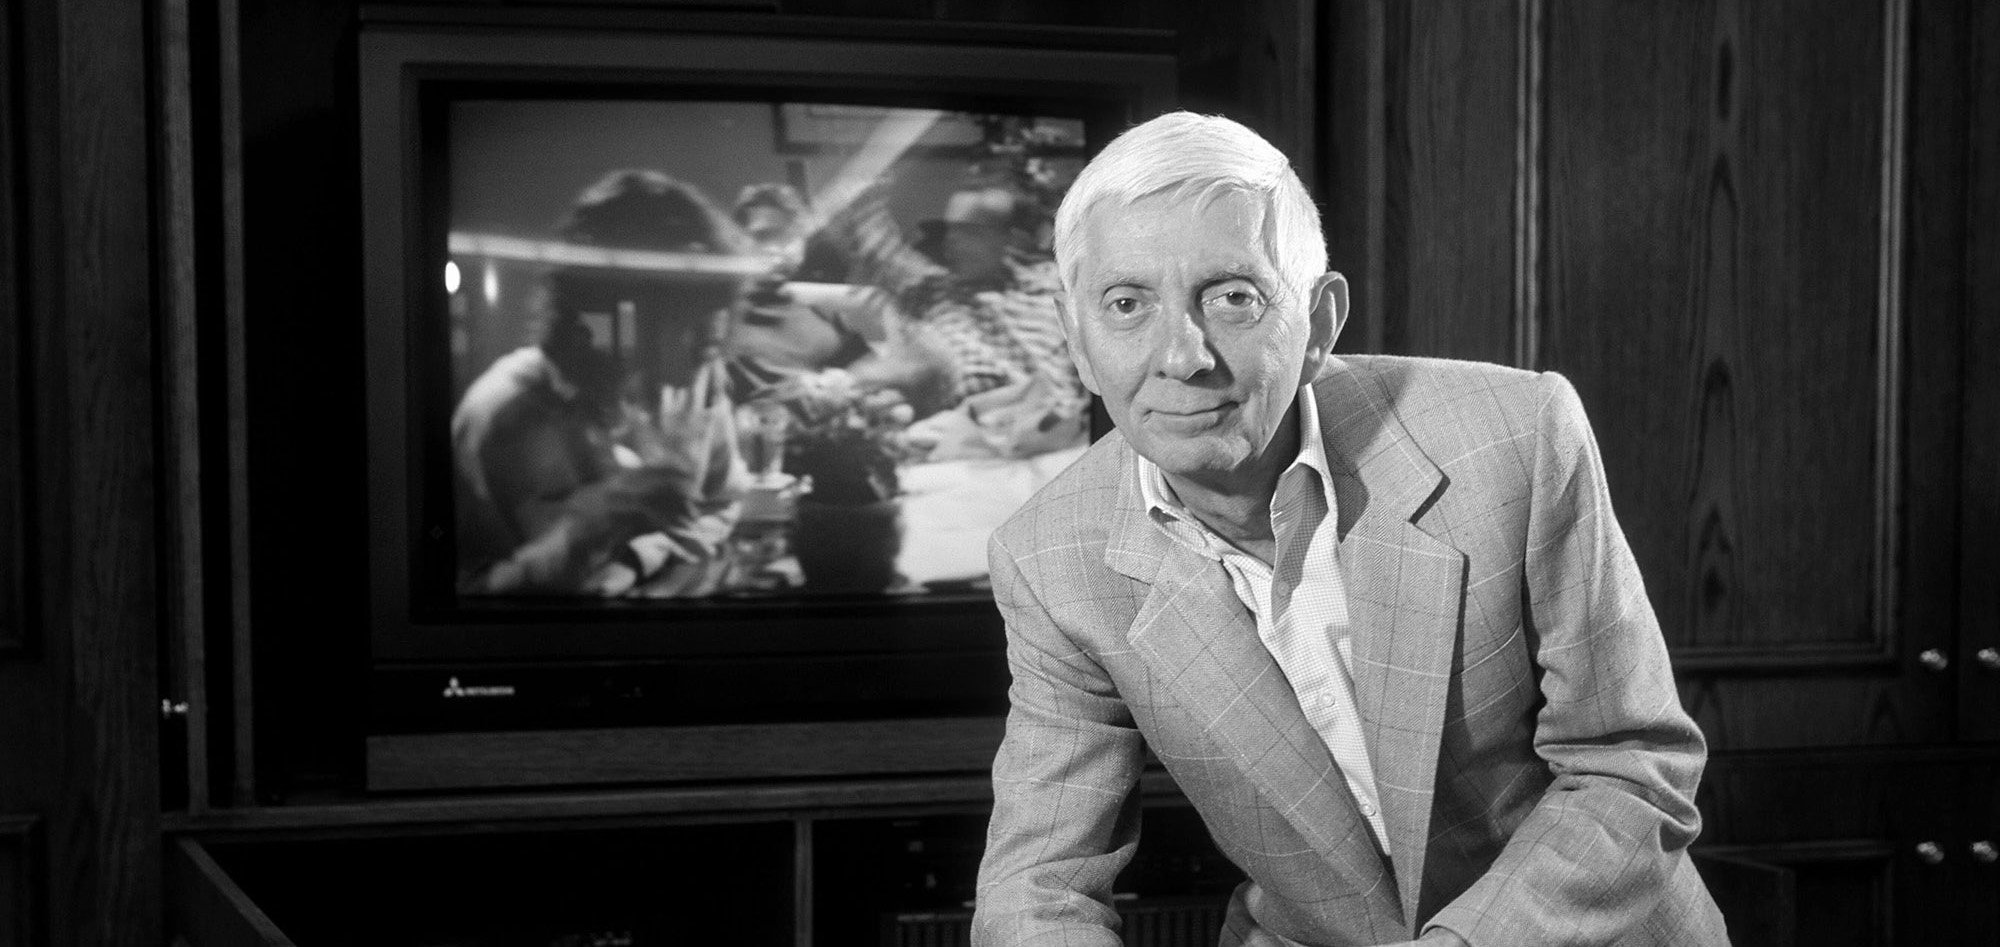 Aaron Spelling holding a remote control in front of a TV set